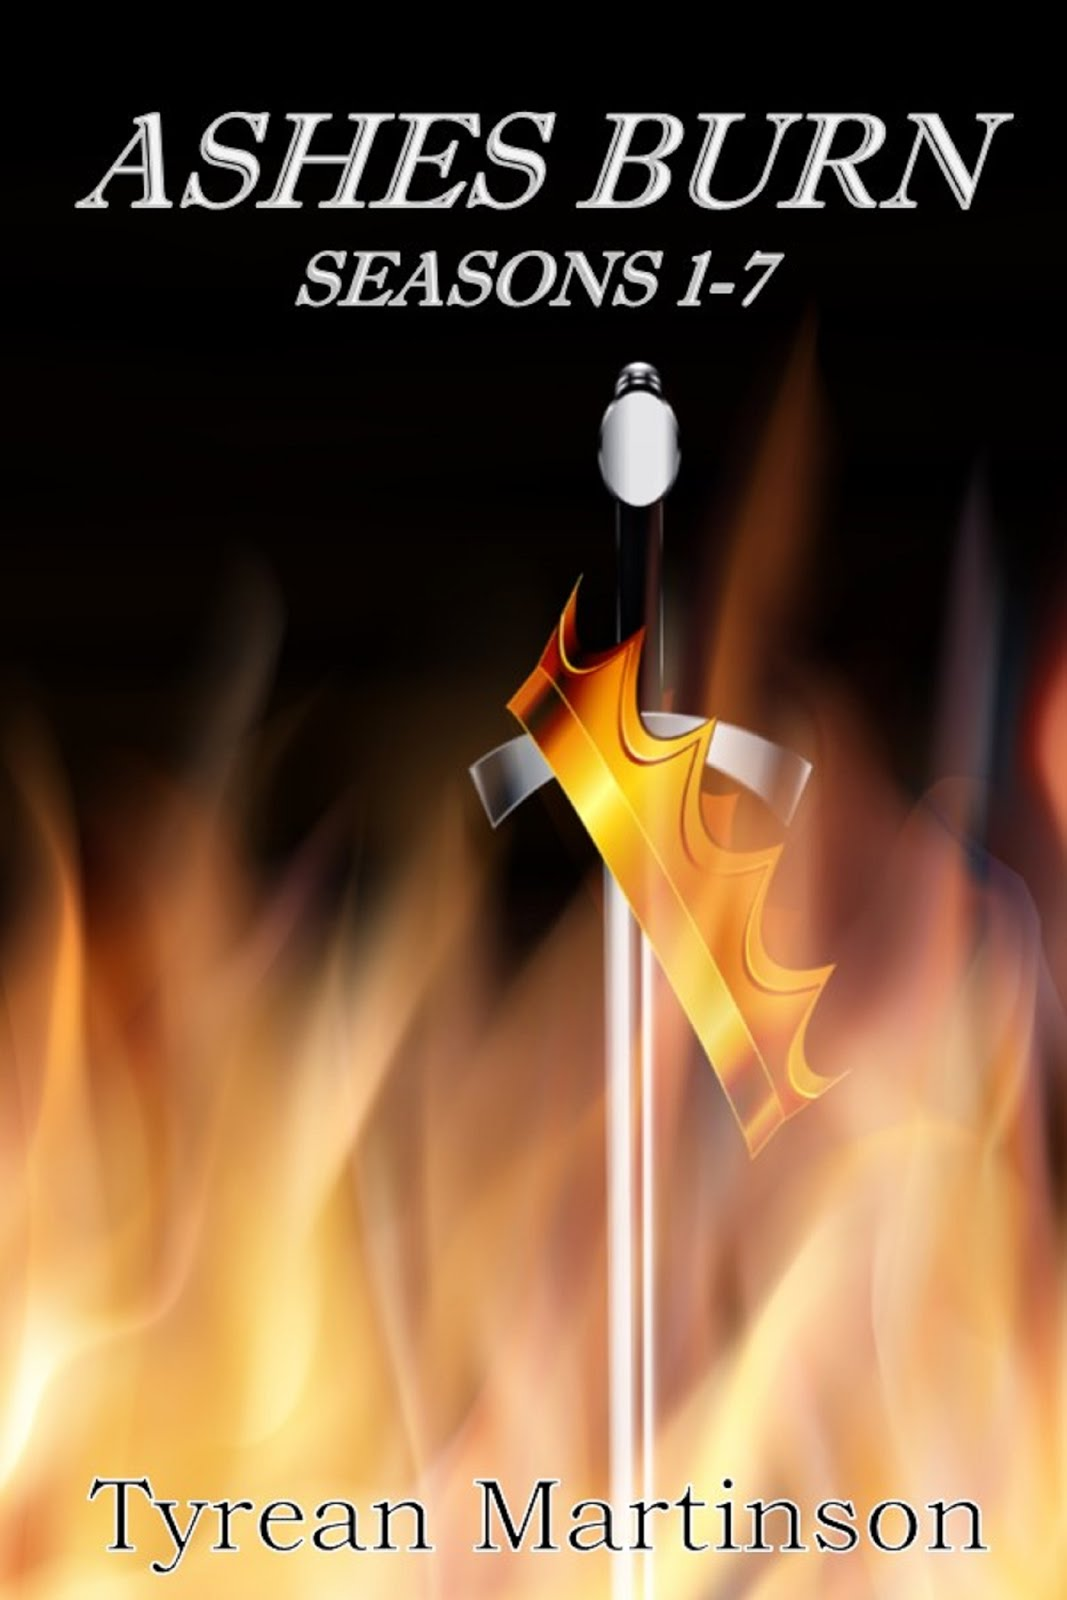 Ashes Burn, Seasons 1-7